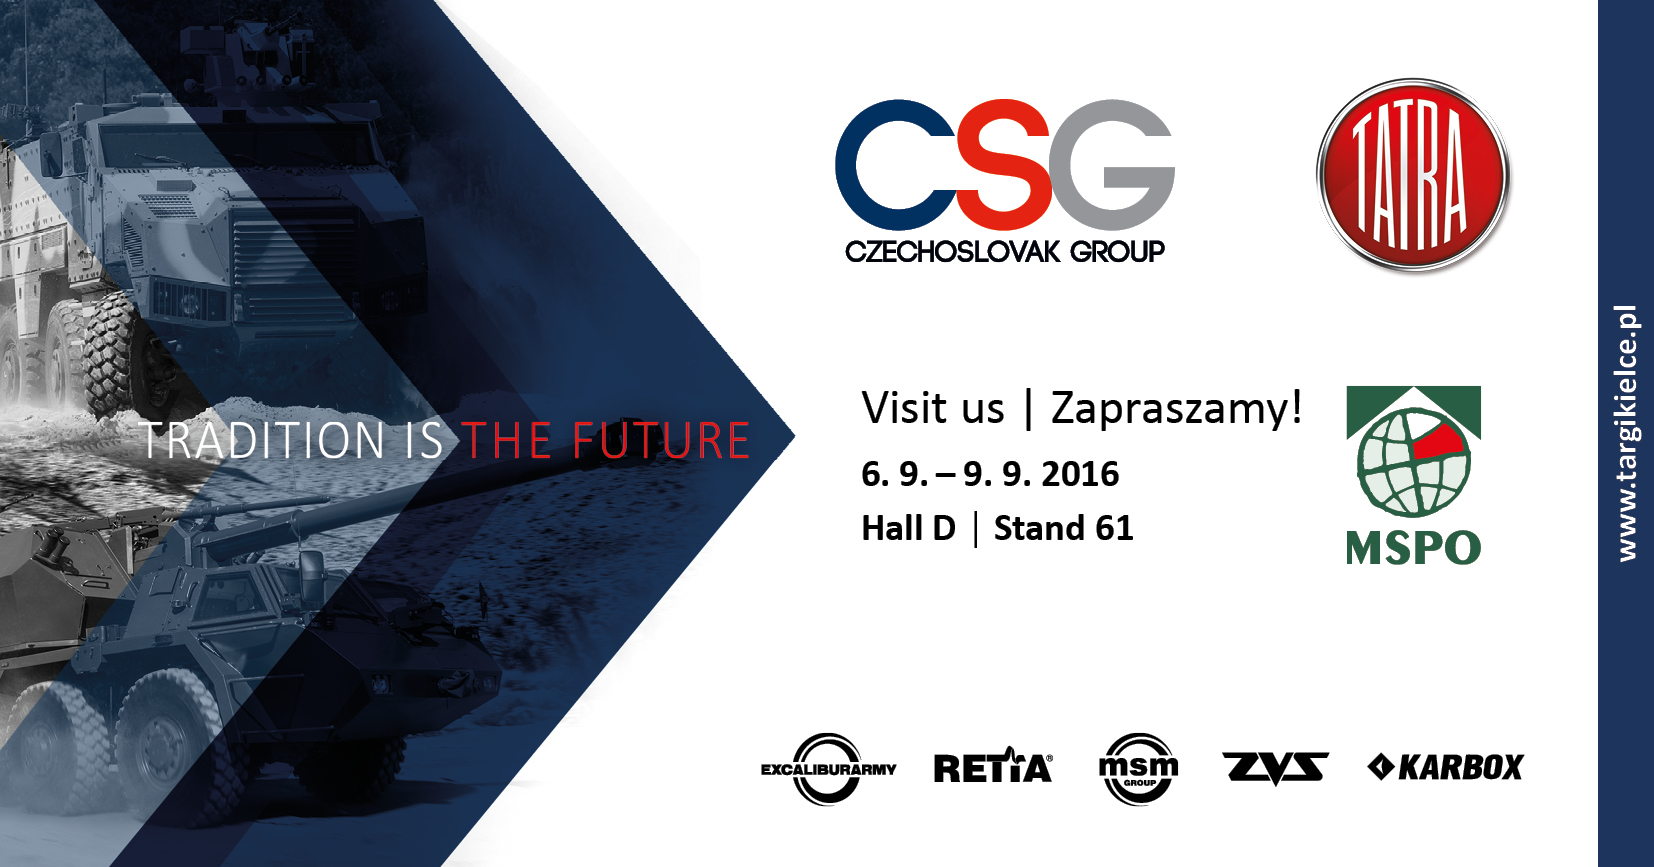 The companies CZECHOSLOVAK GROUP and TATRA will present